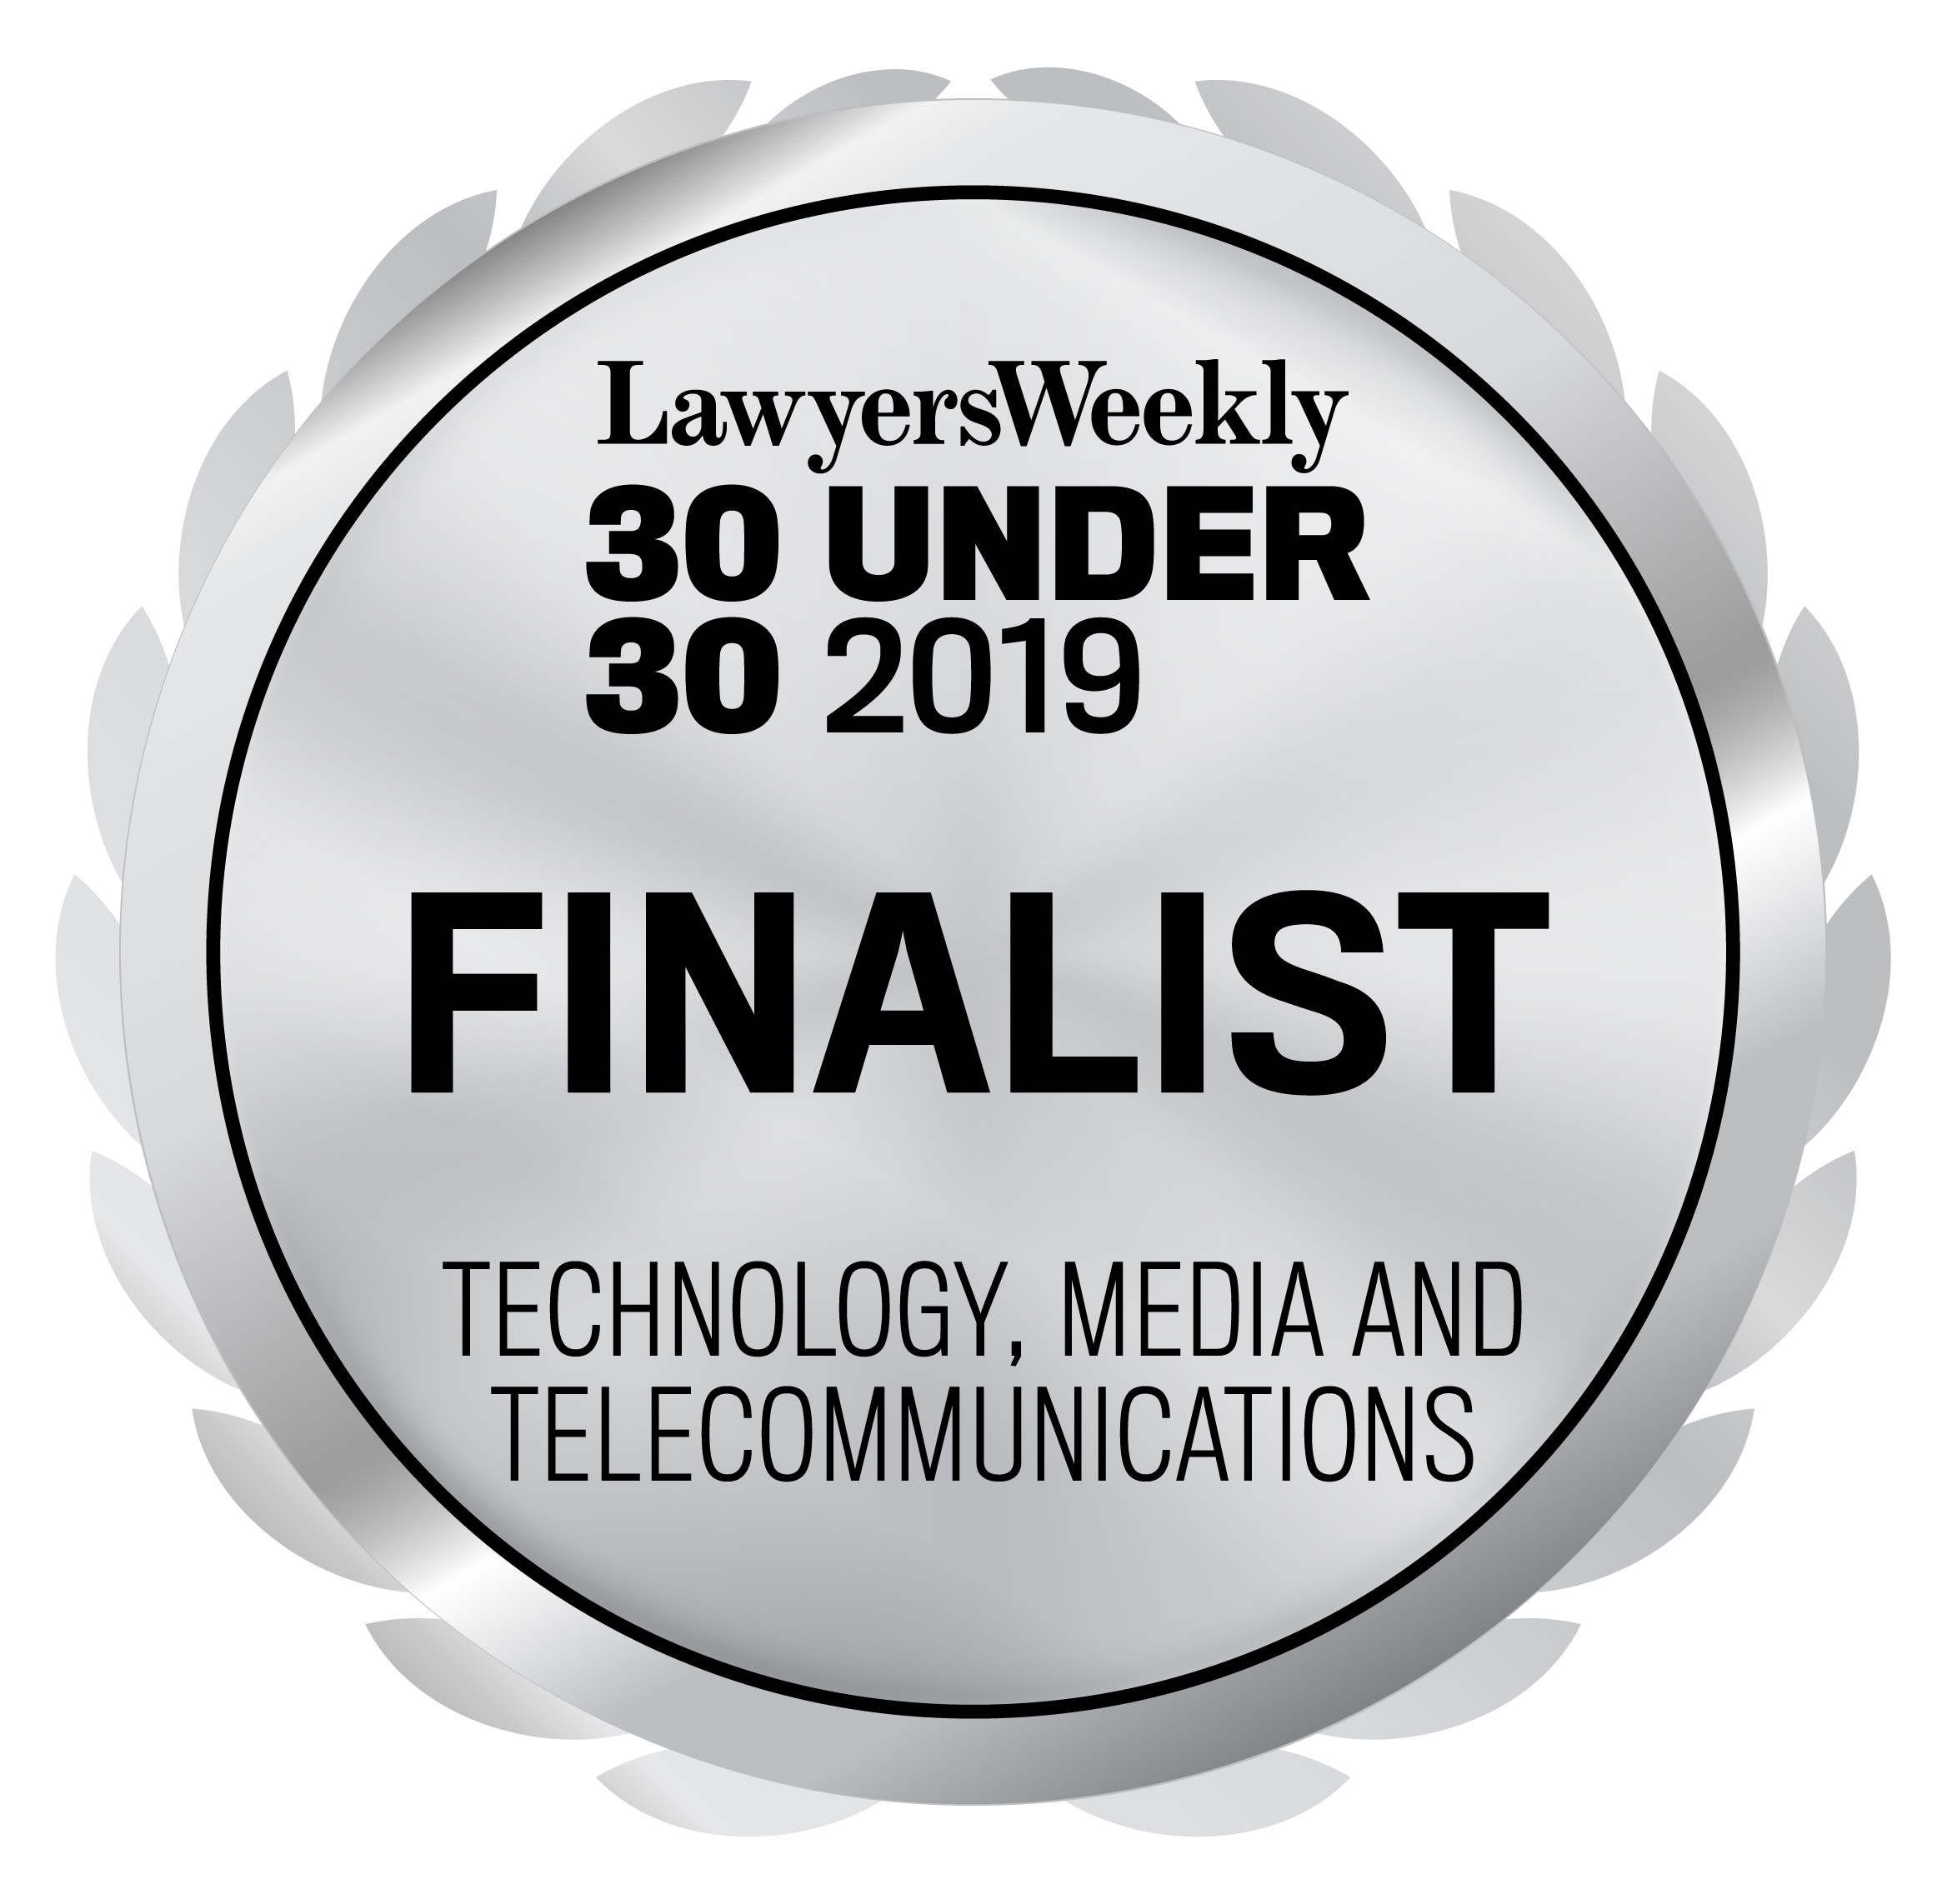 30U30_2019_Seal_Finalist_Technology, Media and Telecommunications